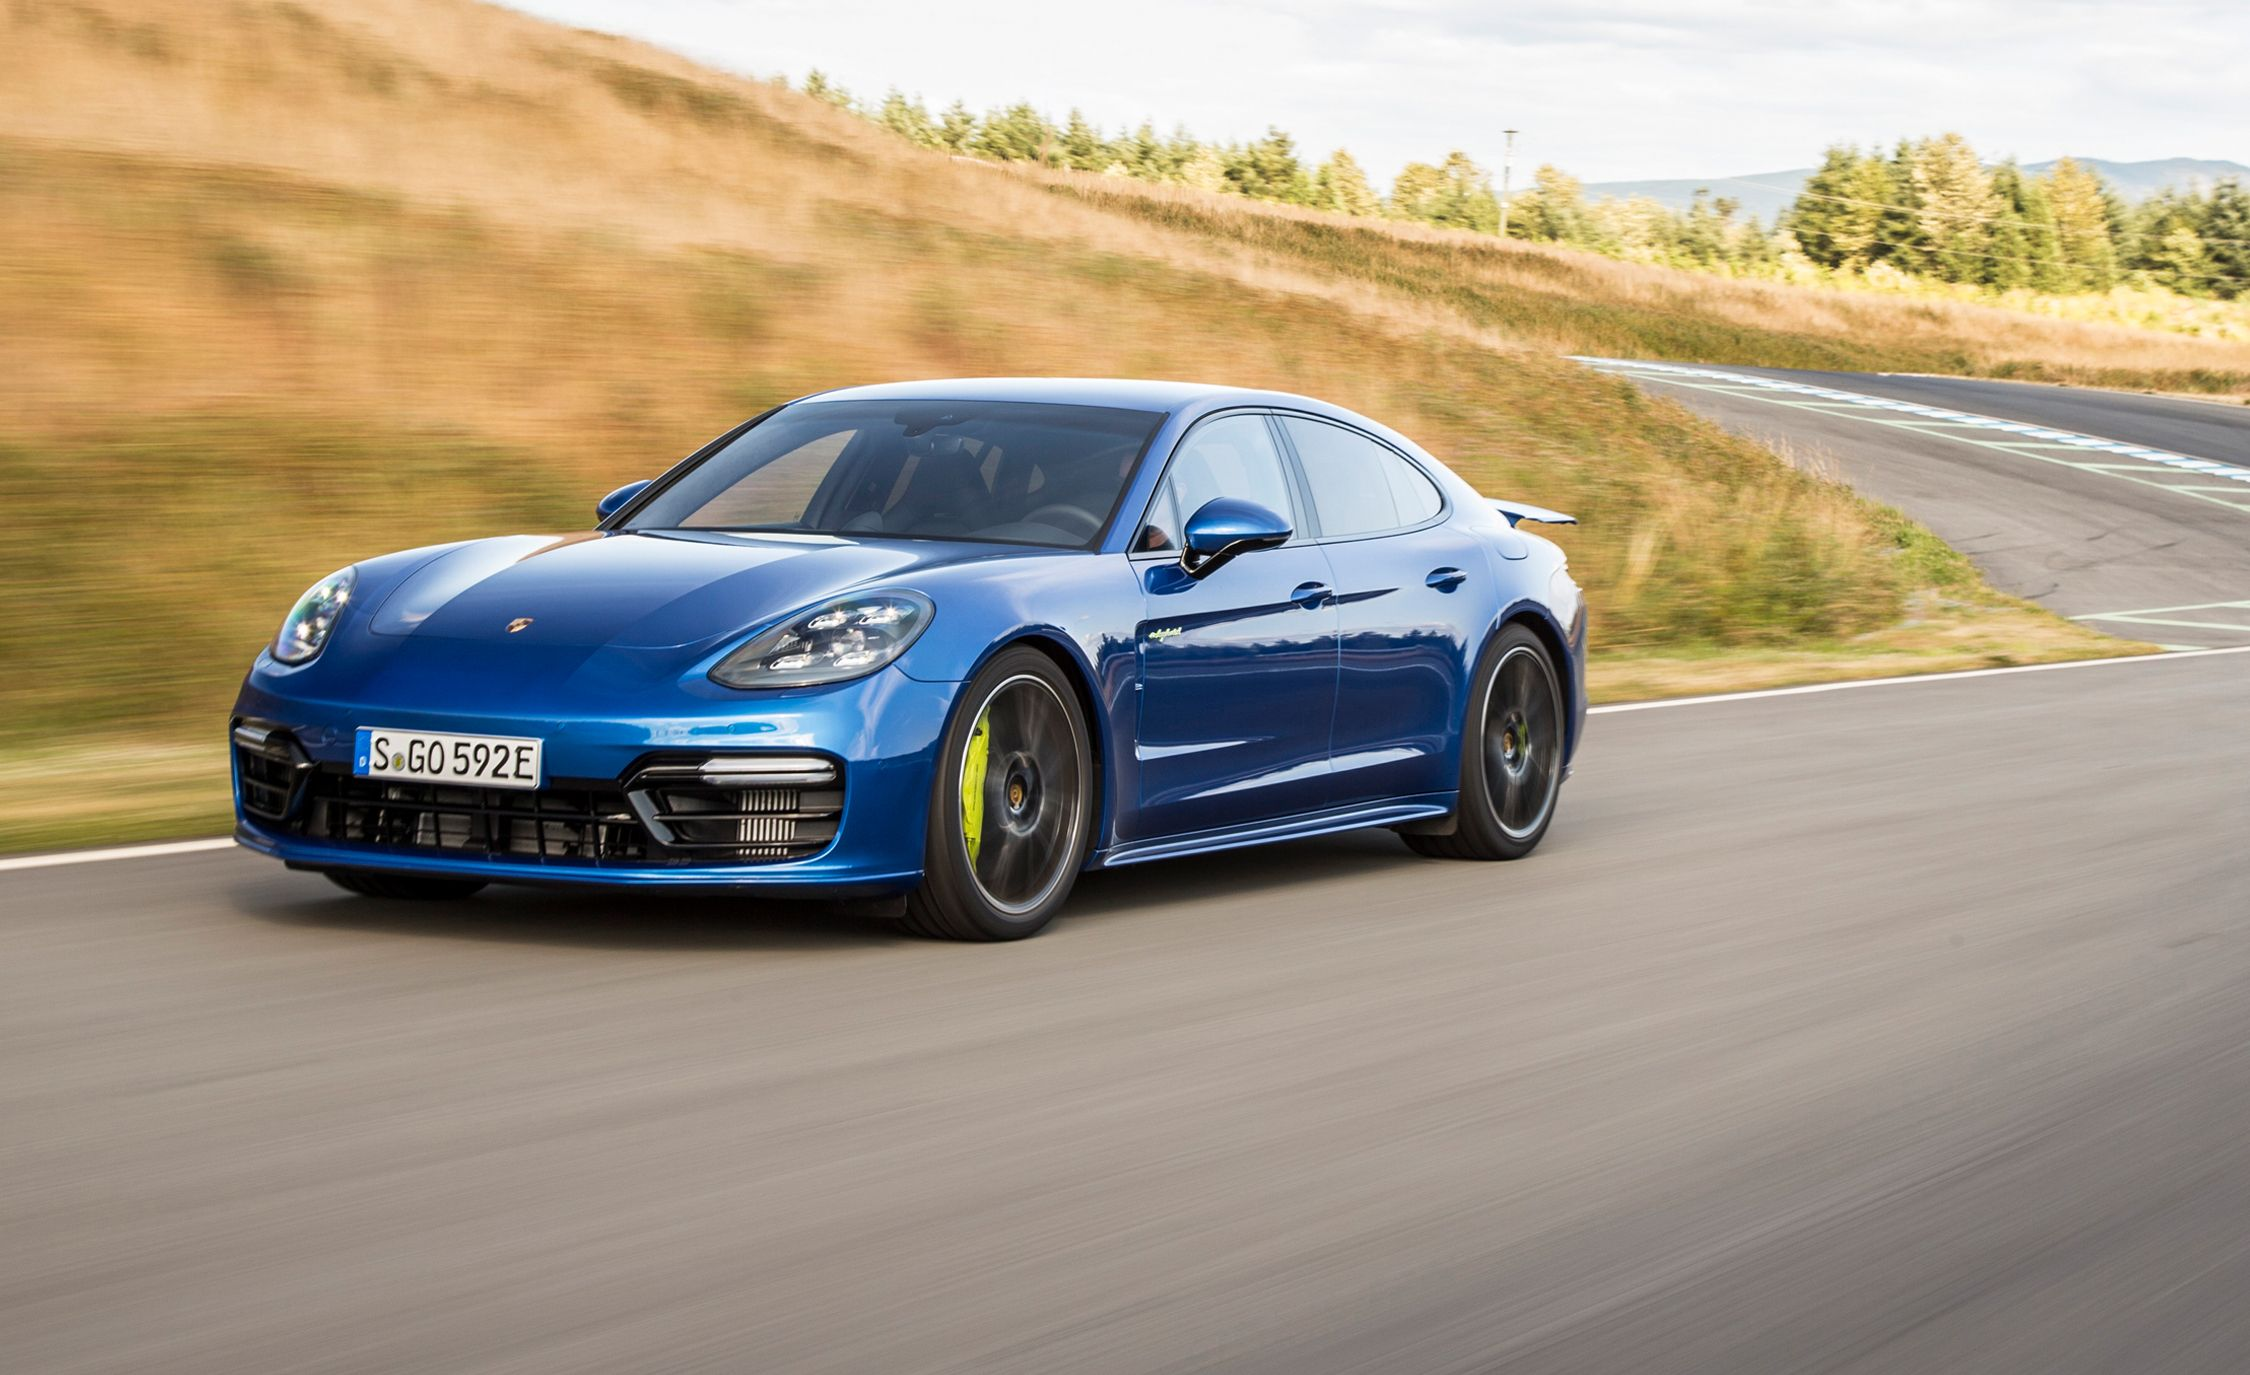 Chevrolet Latest Models >> 2018 Porsche Panamera Turbo S E-Hybrid First Drive | Review | Car and Driver